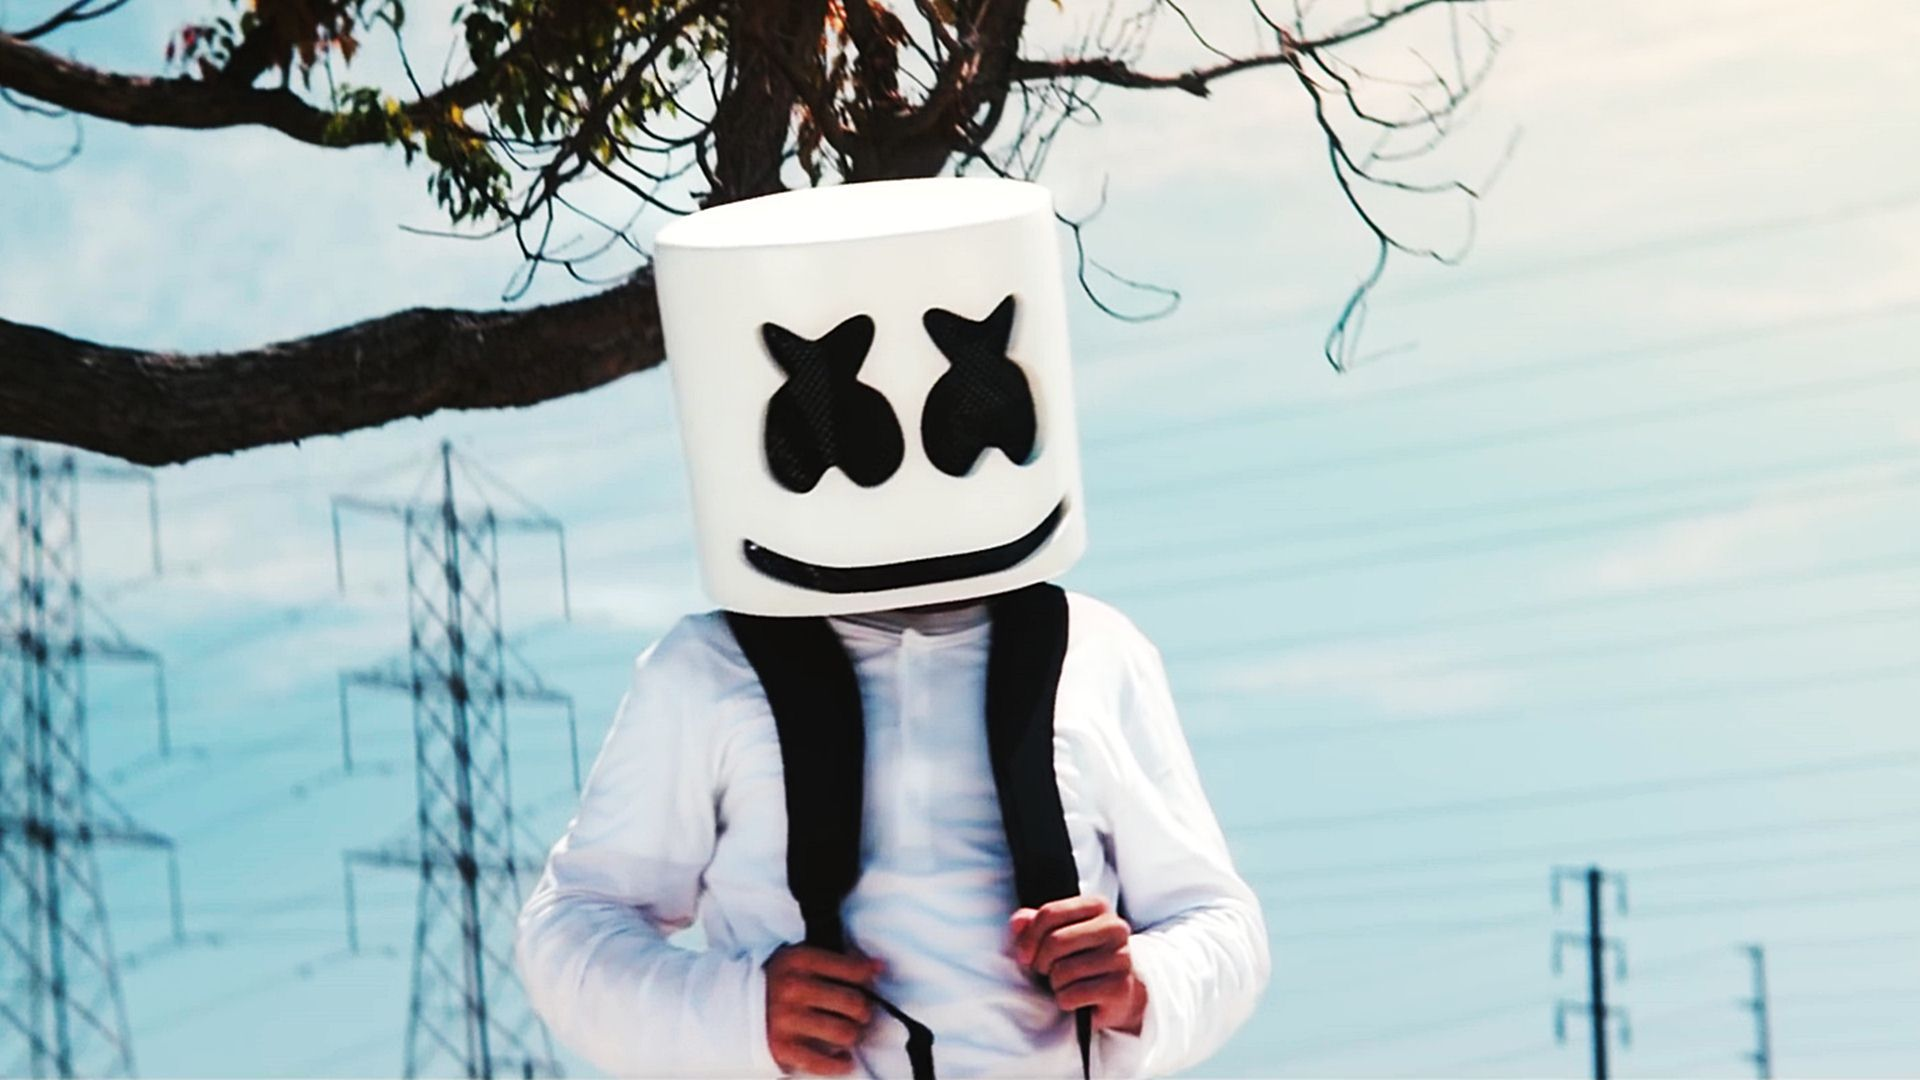 Marshmello Hd 06212 - Baltana In 2019